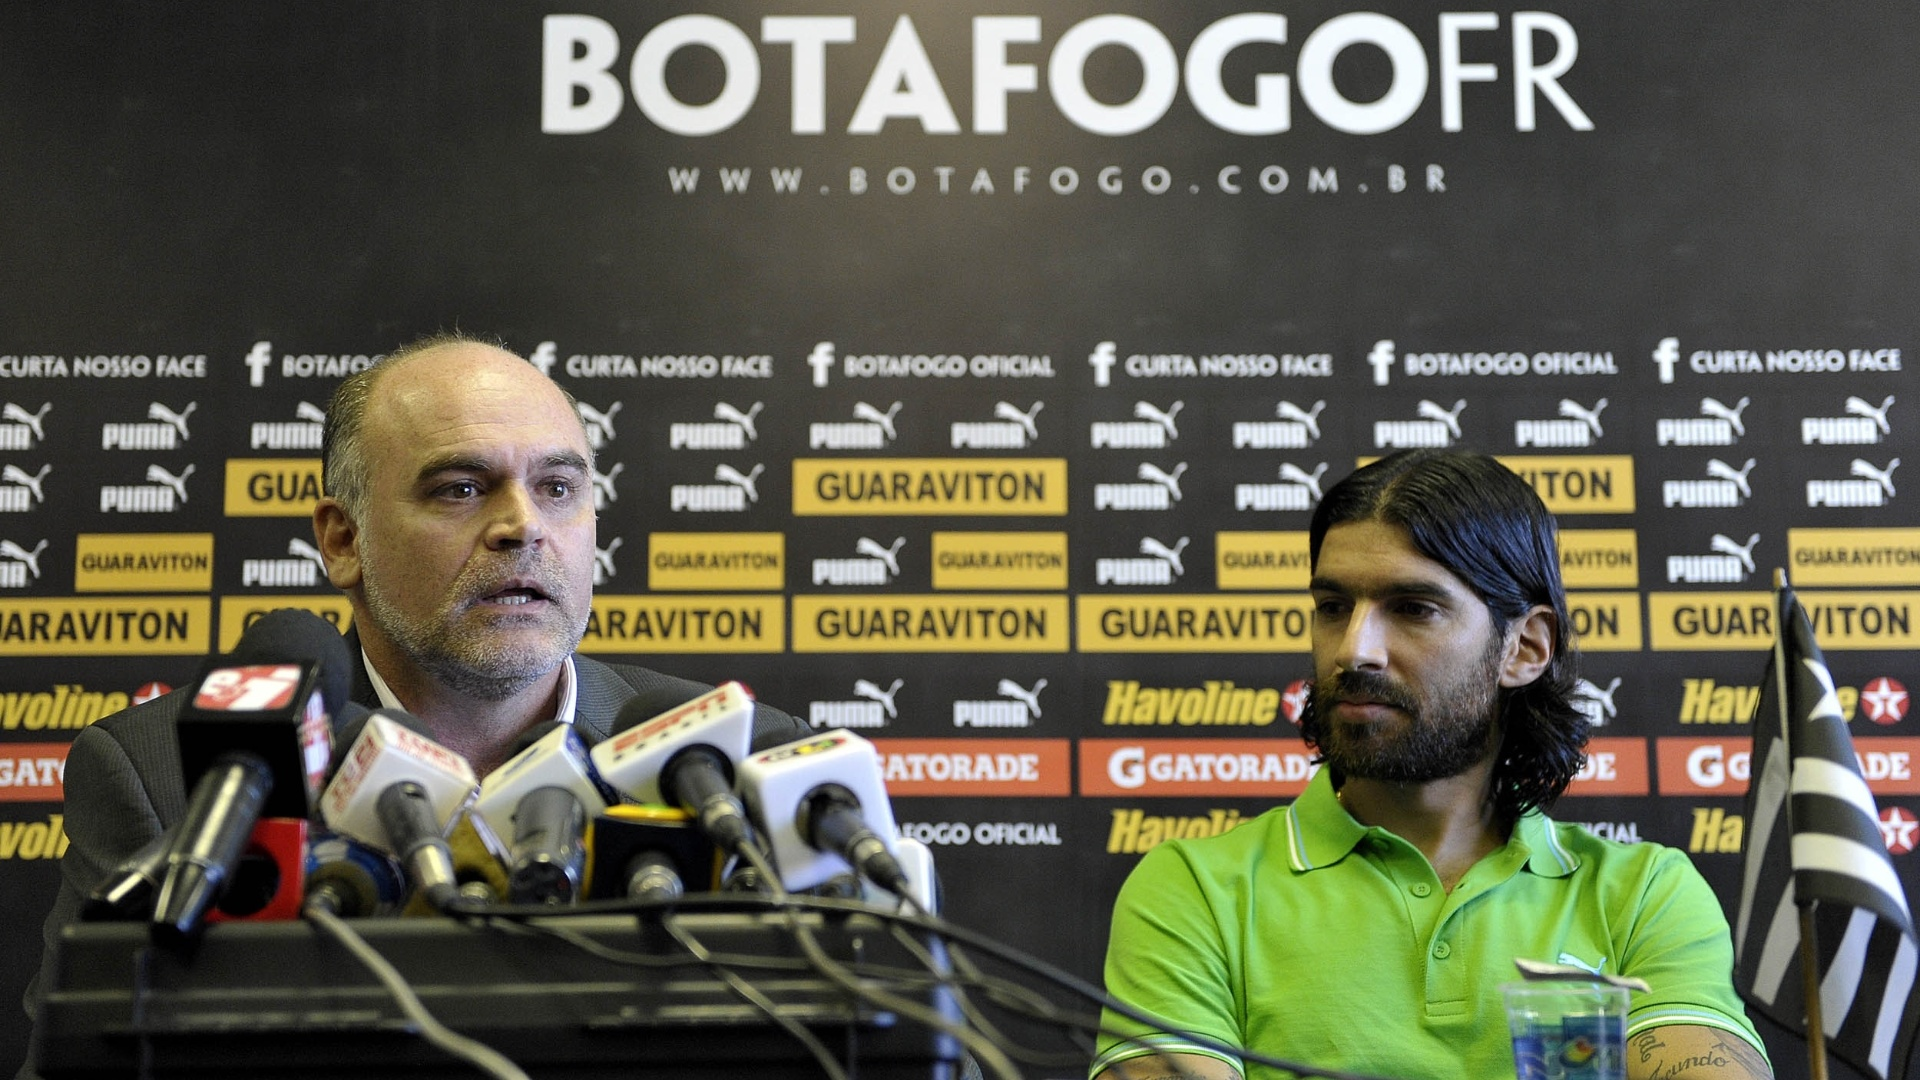 Loco Abreu observa presidente do Botafogo falar durante despedida do clube (06/07/2012)